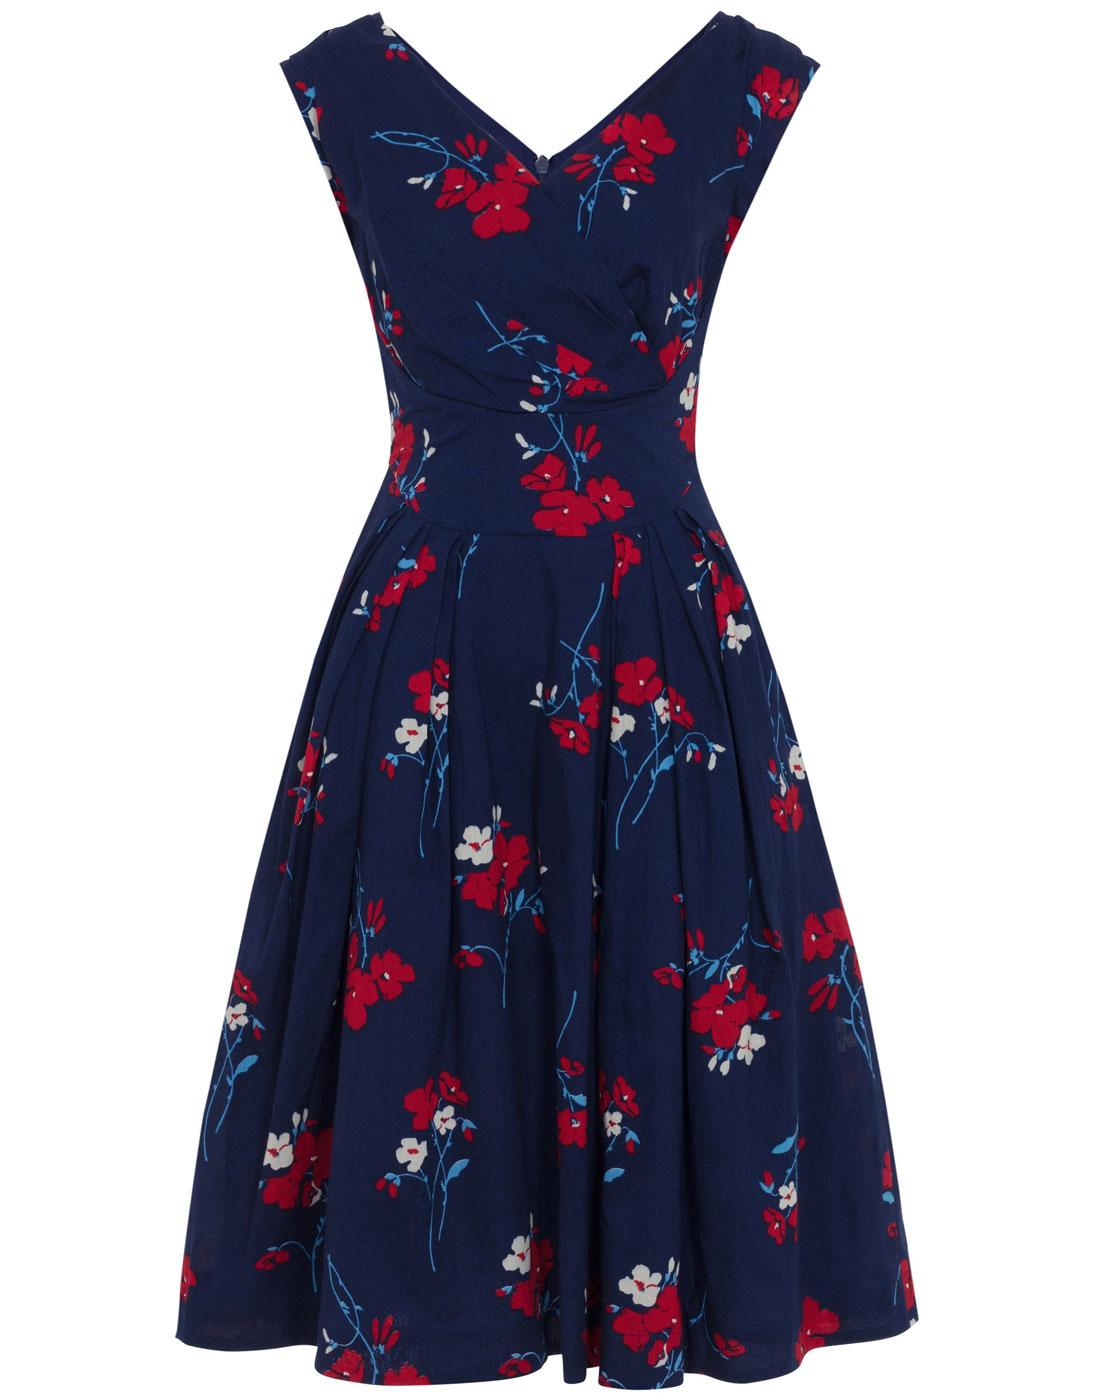 Florence EMILY AND FIN 50s Vintage Floral Dress